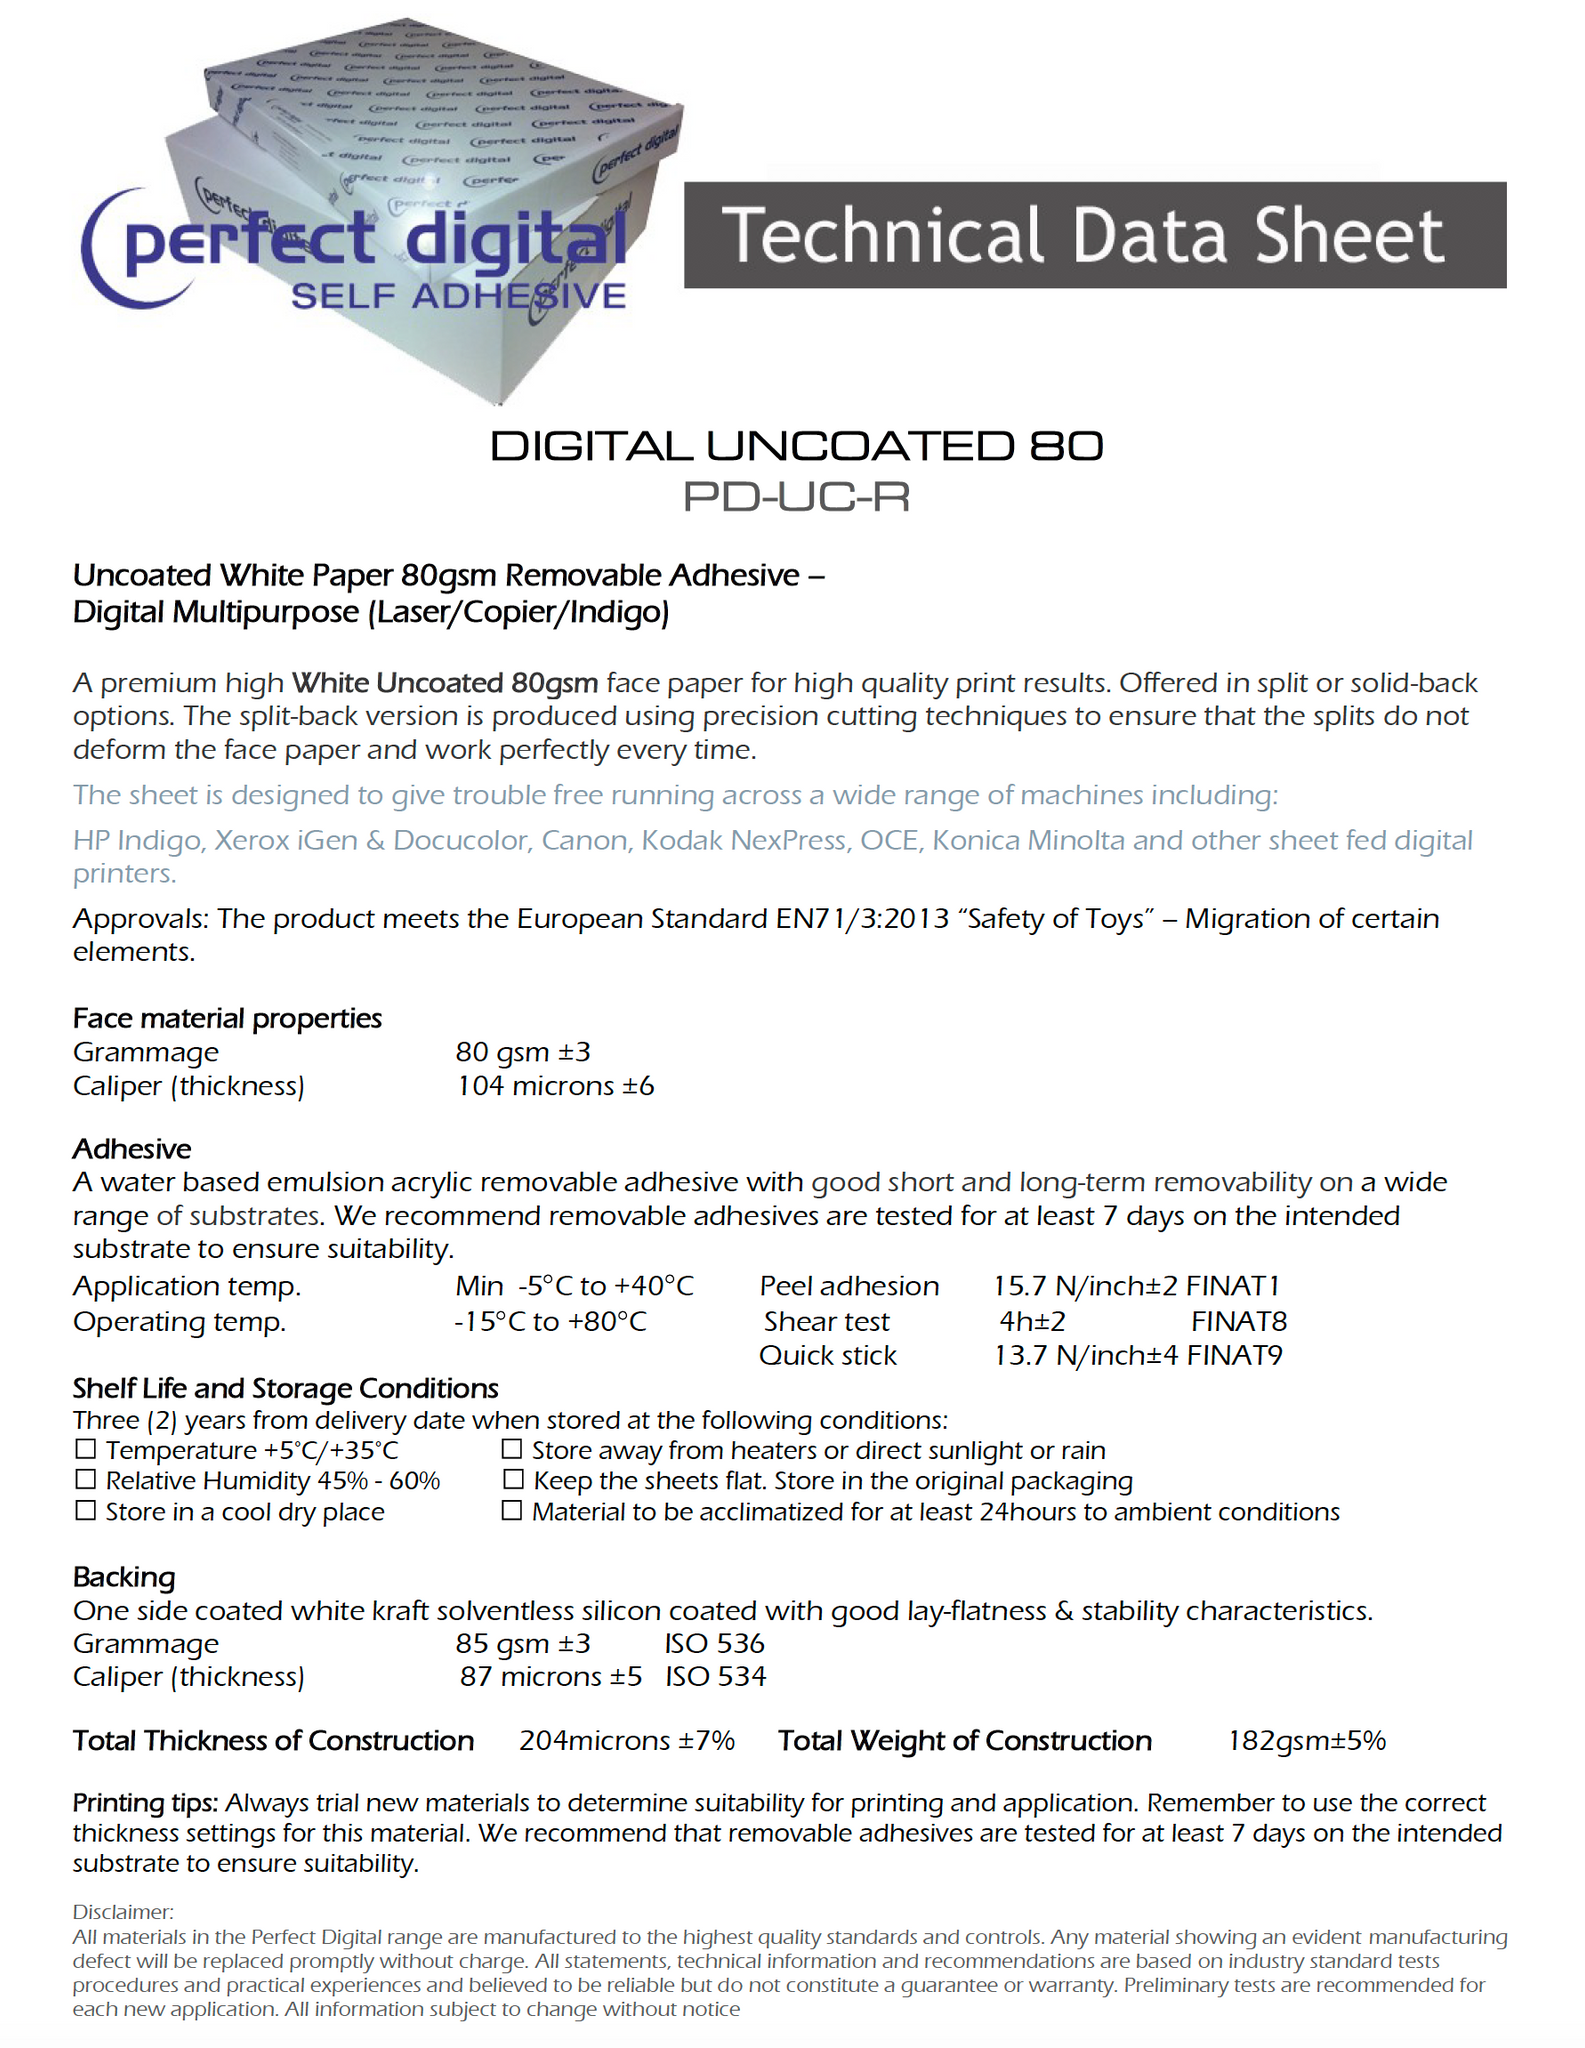 DIGITAL UNCOATED 80 PD-UC-R